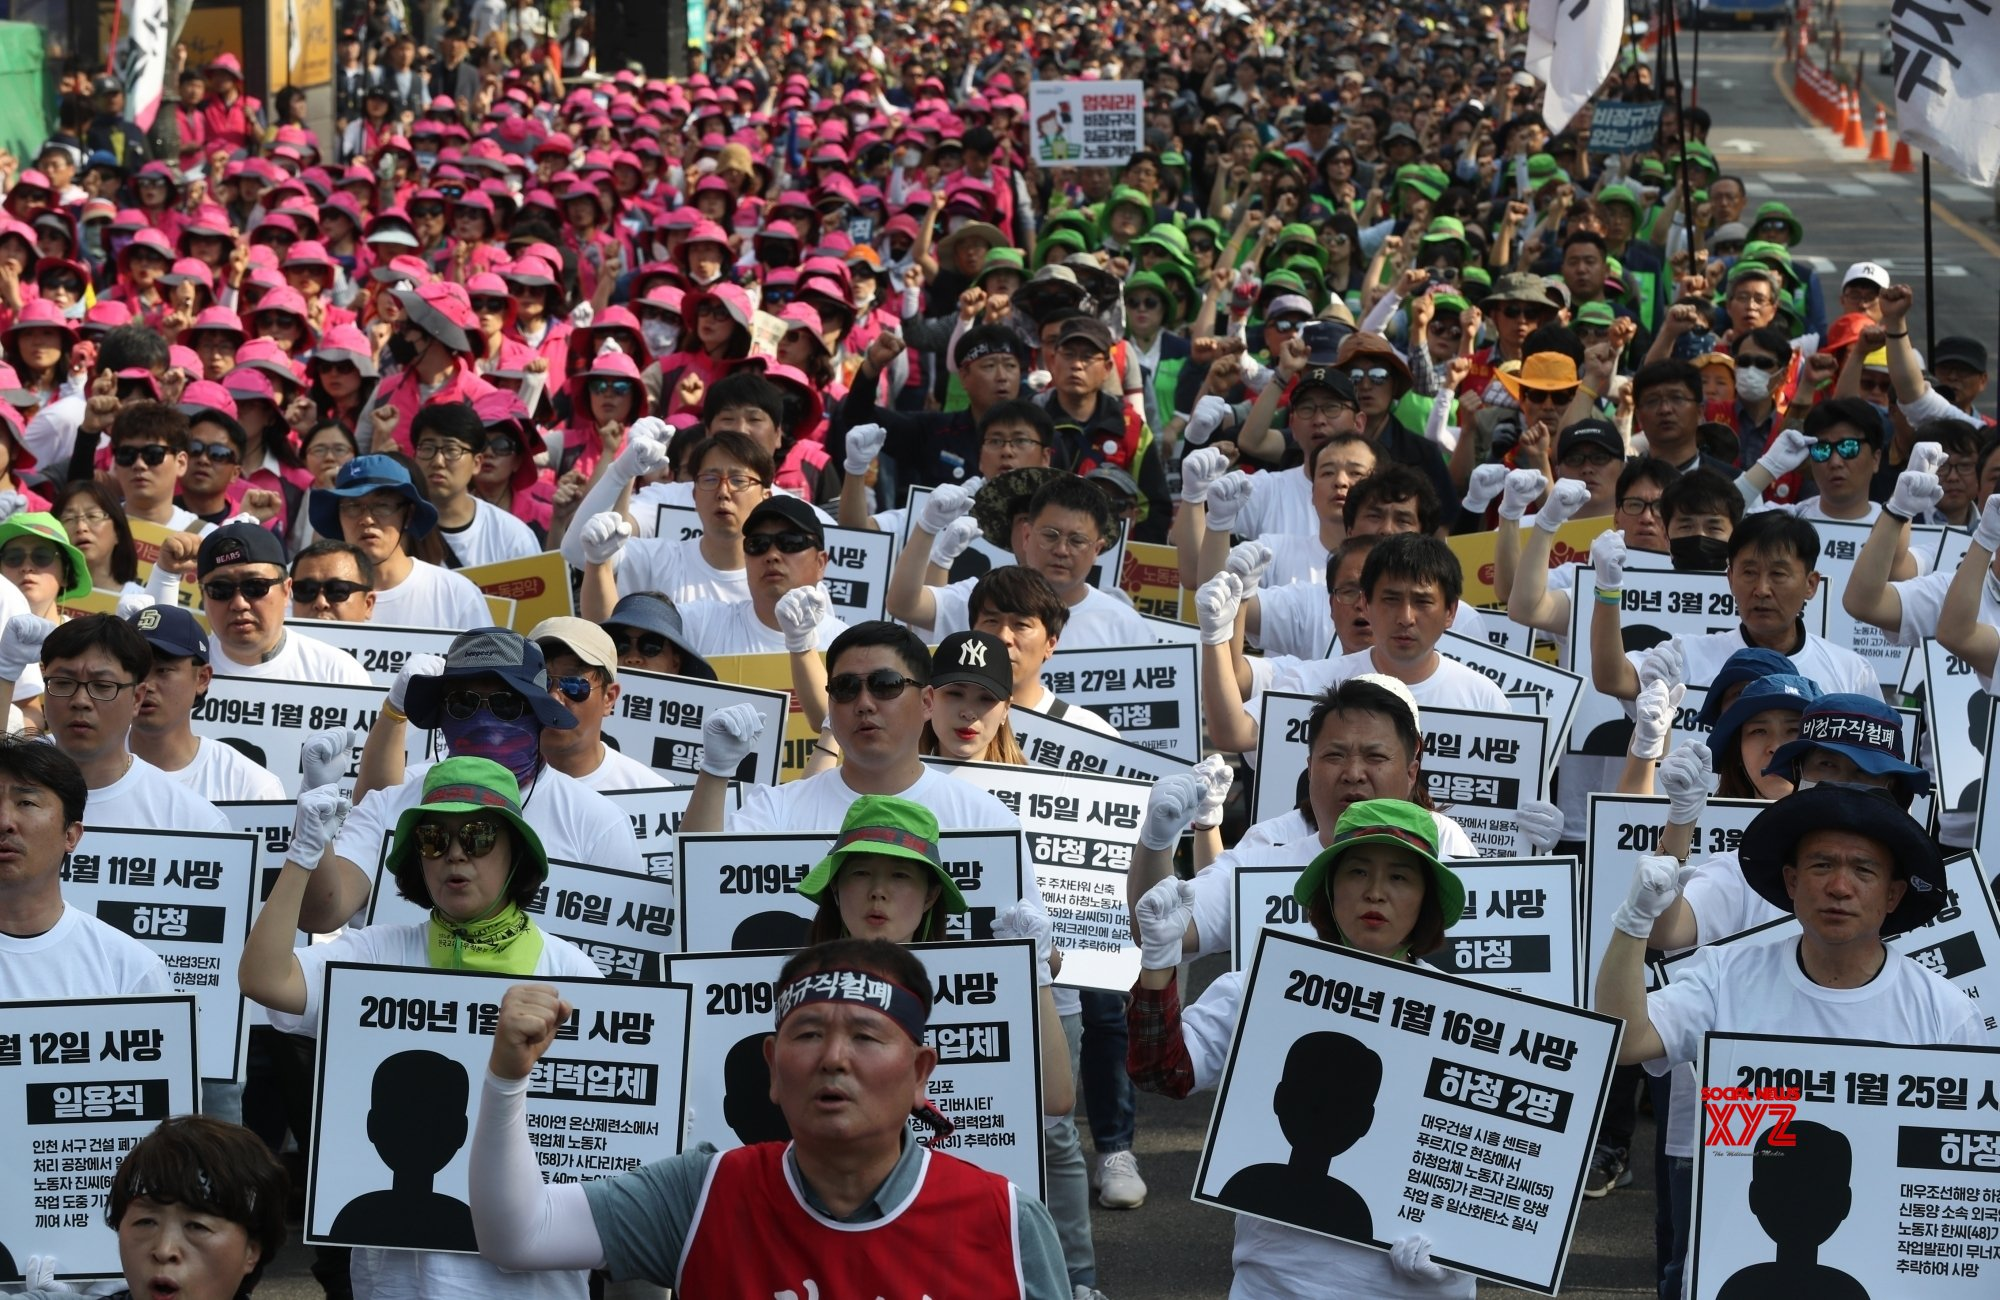 Seoul city vows strict response to illegal rallies on March 1